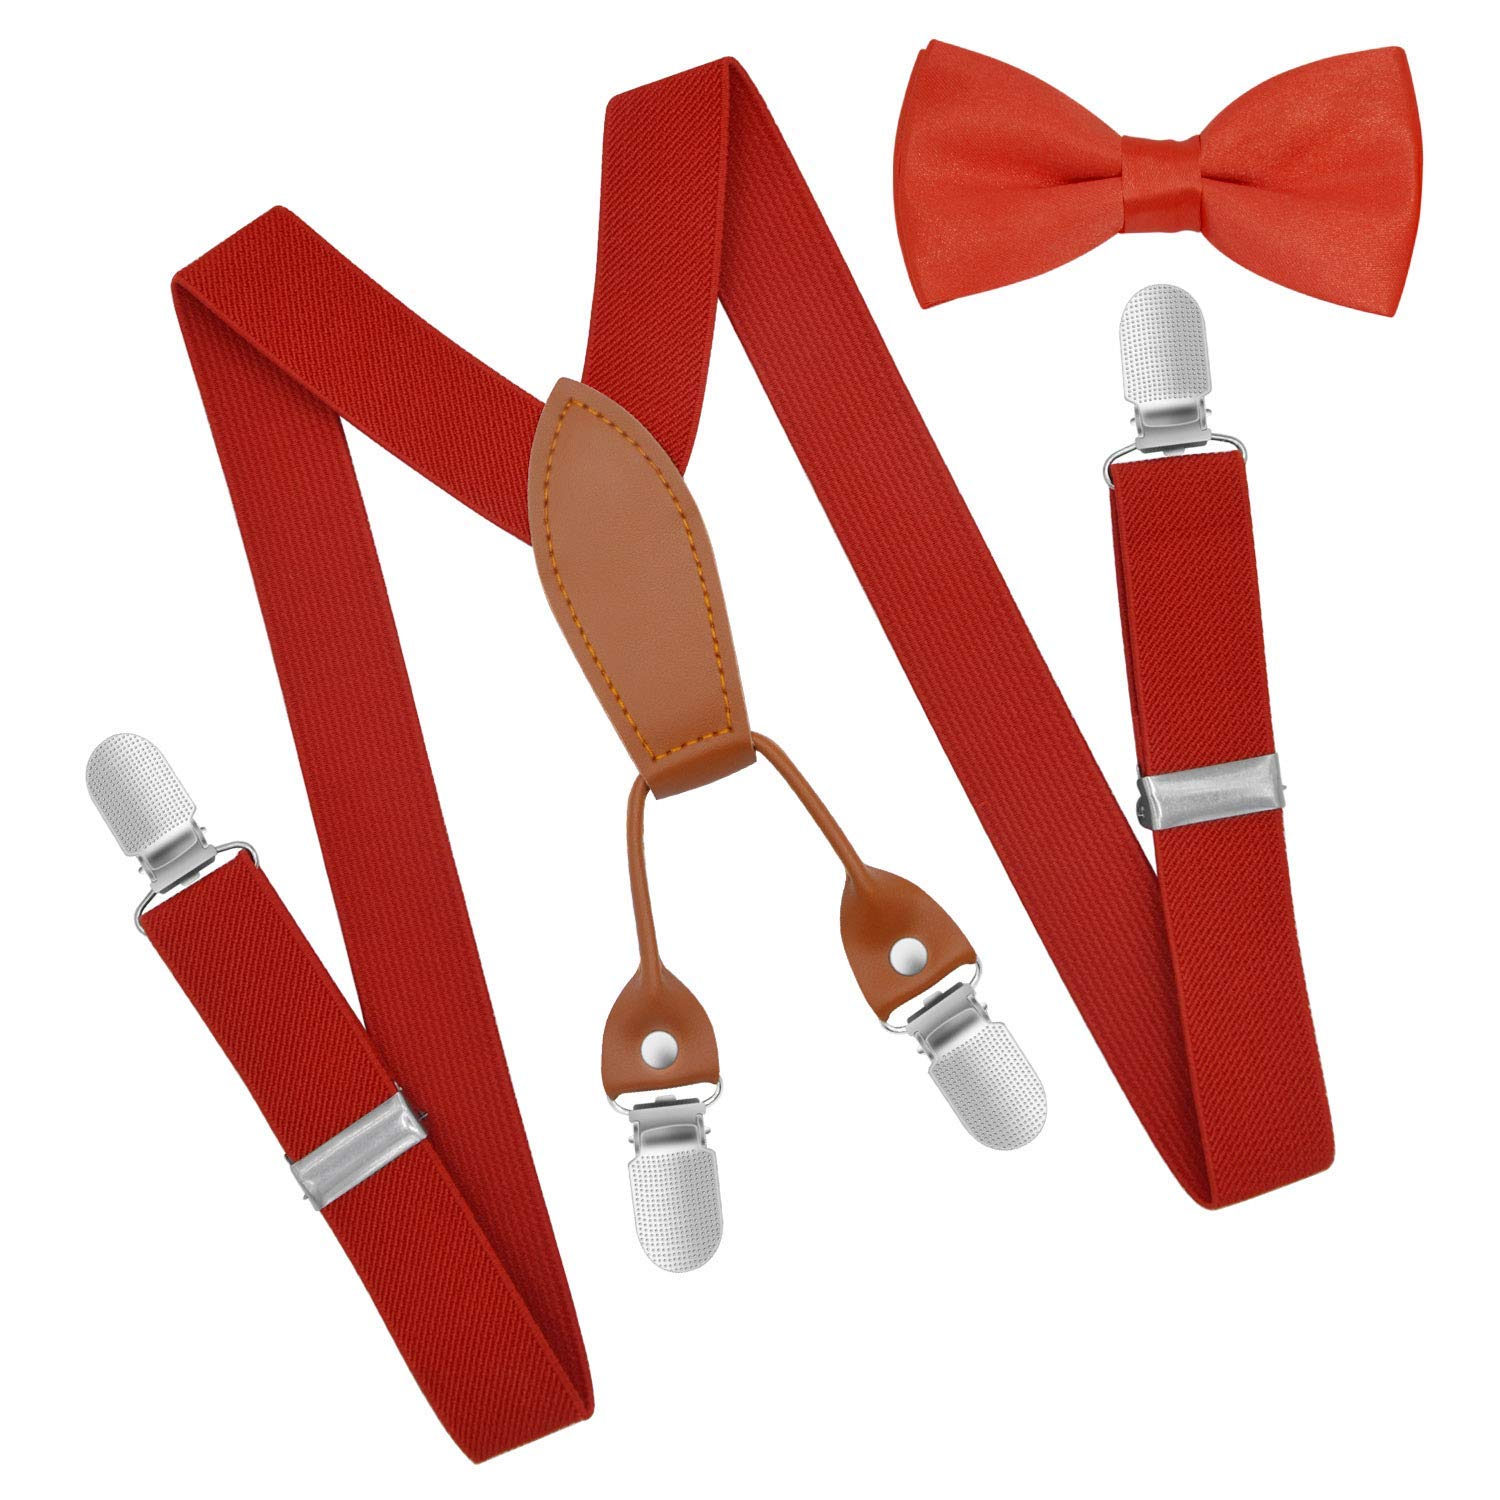 85d489a33fa Get Quotations · Brooben Child Kids Suspenders Bowtie Set - Adjustable  Length Suspender with Bow Tie Set for Boys